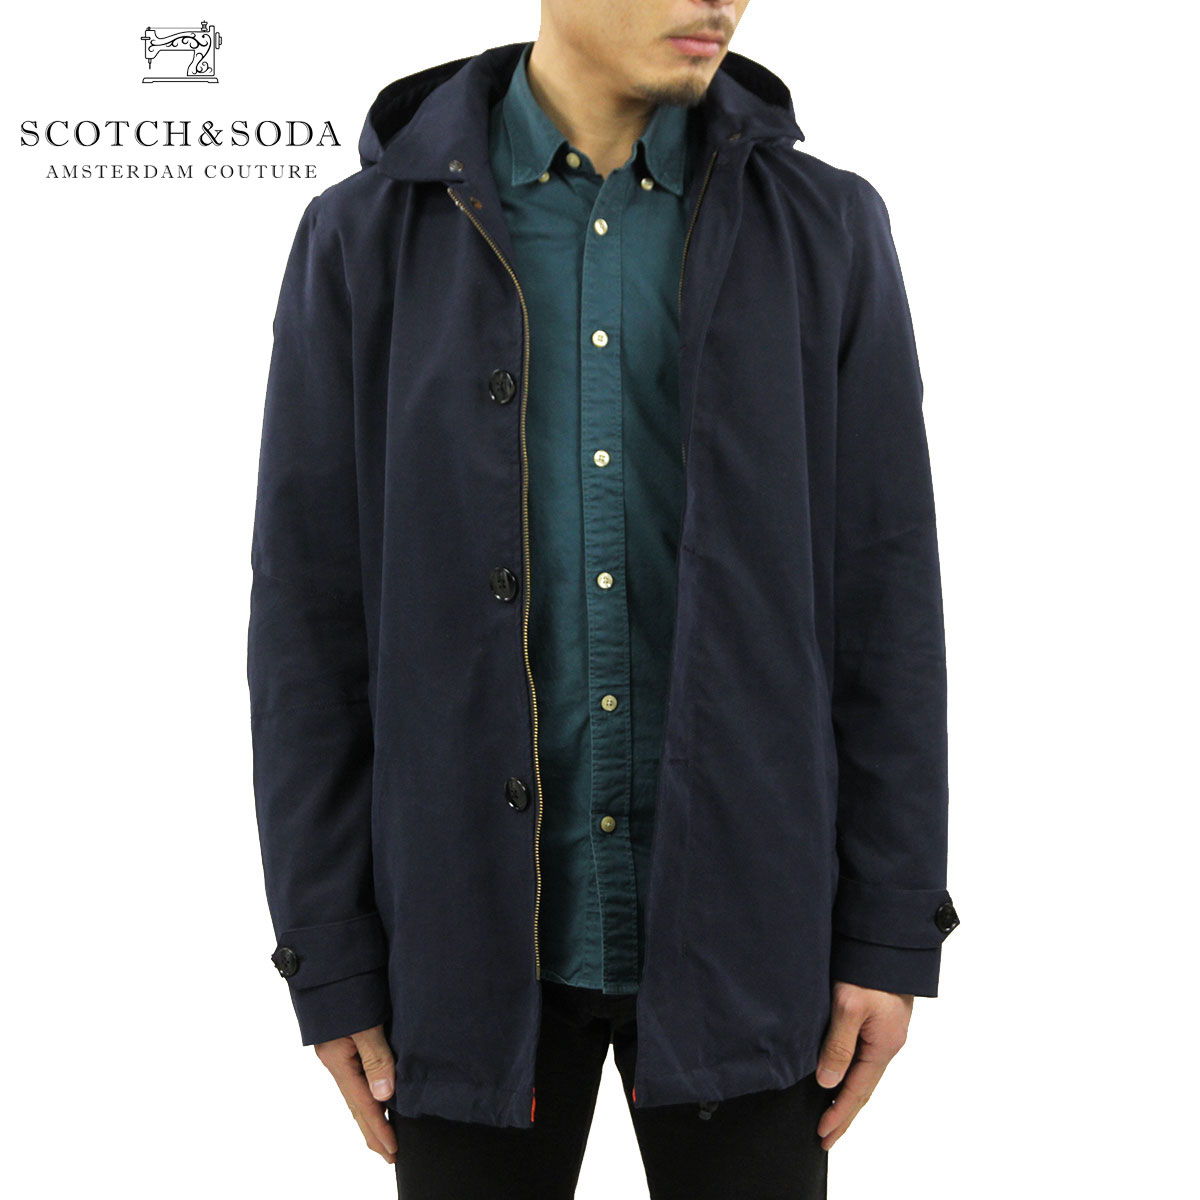 スコッチアンドソーダ SCOTCH&SODA 正規販売店 メンズ アウターコート Classic trench coat in peached cotton quality with detachable knitted inner 101350 8F:MIXON